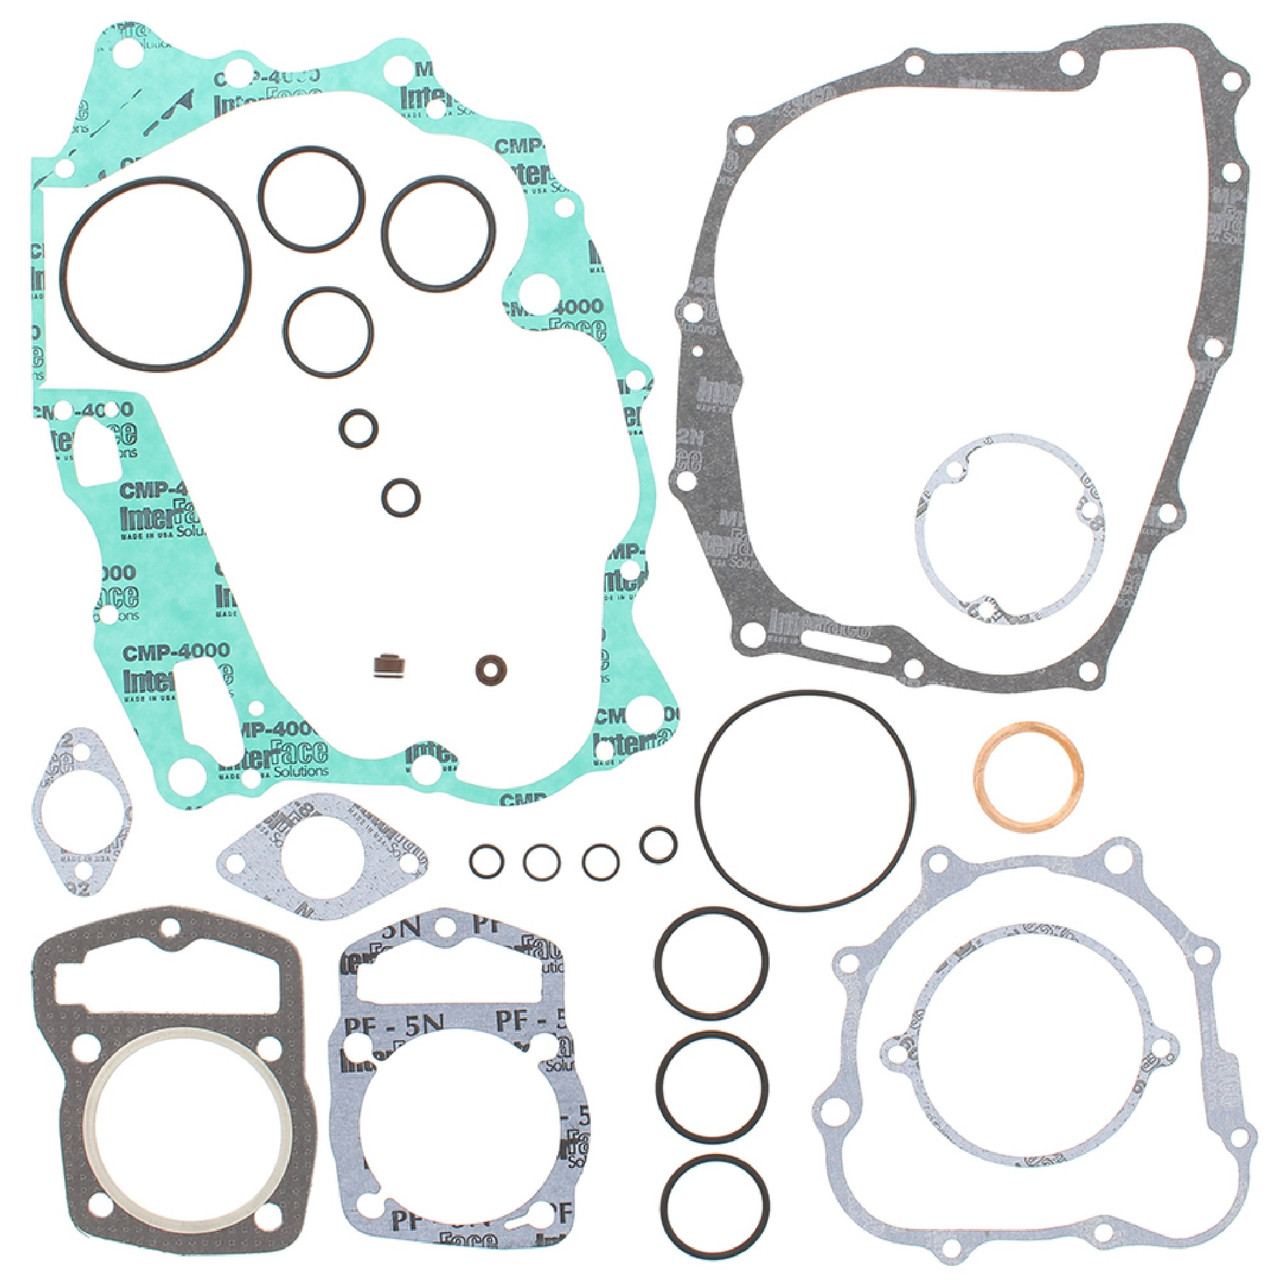 Winderosa Complete Gasket Kit for Honda CRF 230 L 08 09, CRF 230 M 09